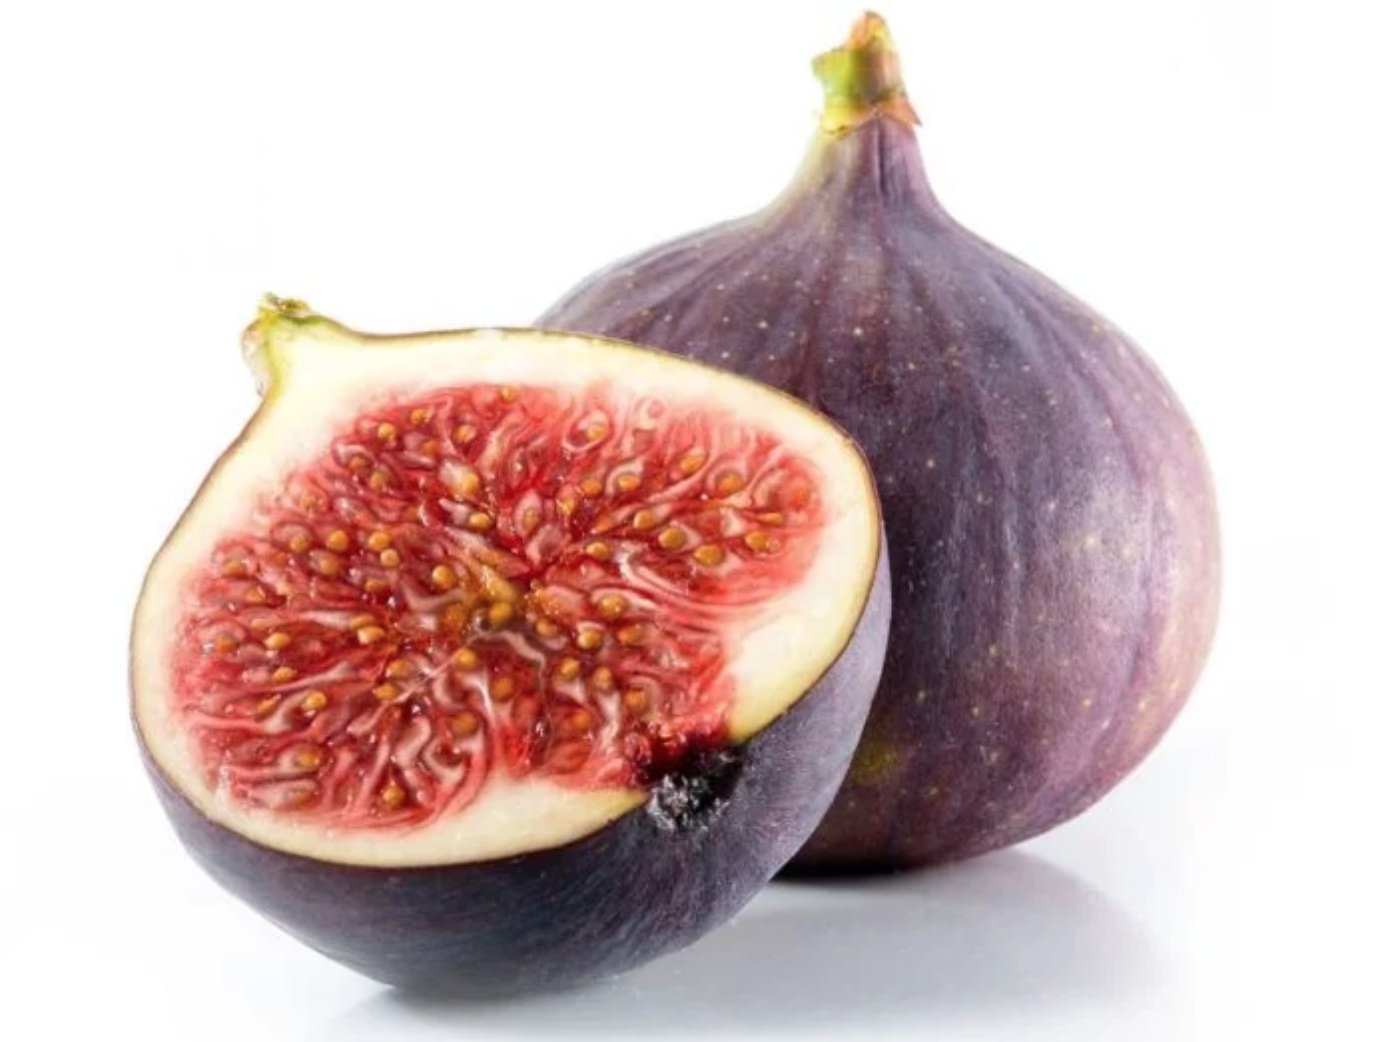 Figs - Boost your pheromone production making you attractive to the opposite sex. A fig, when cut open, looks like a curvy female body.